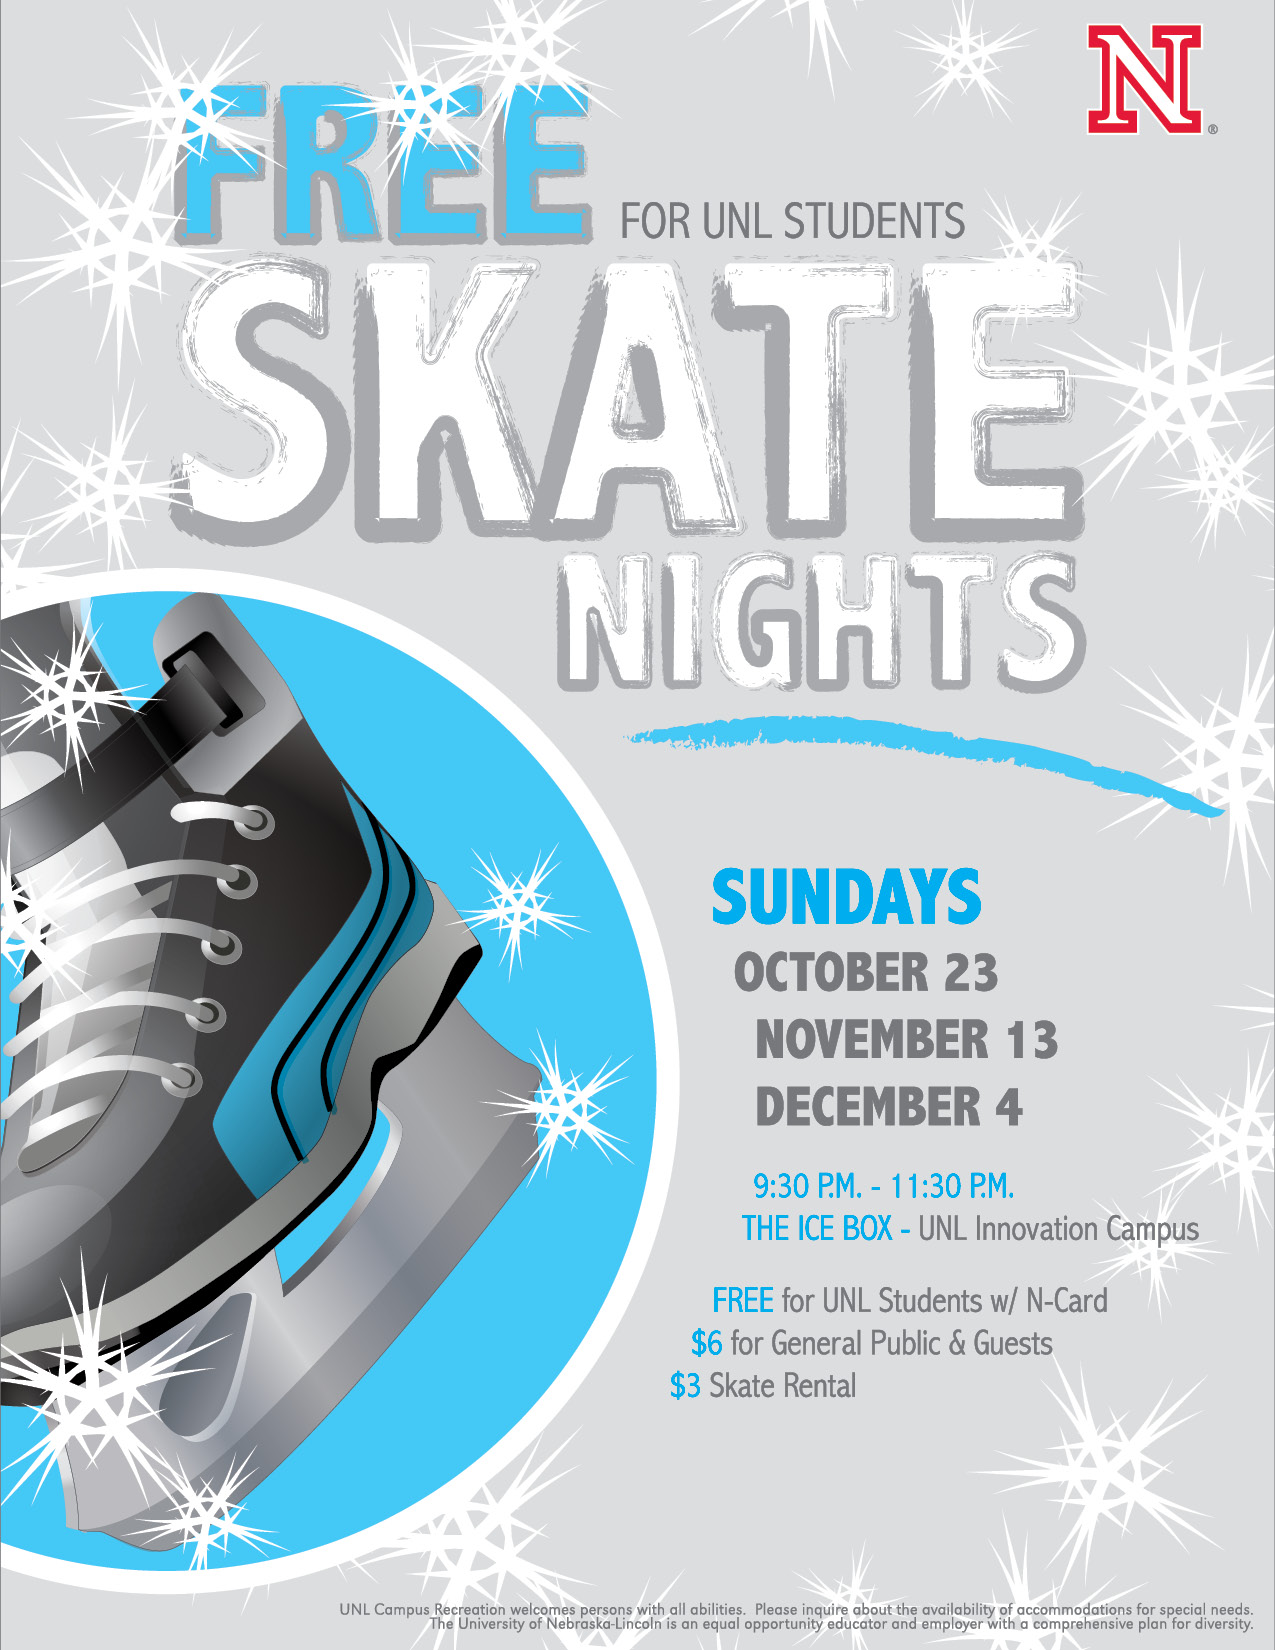 BB.crec.free skate nights.fall11.jpg